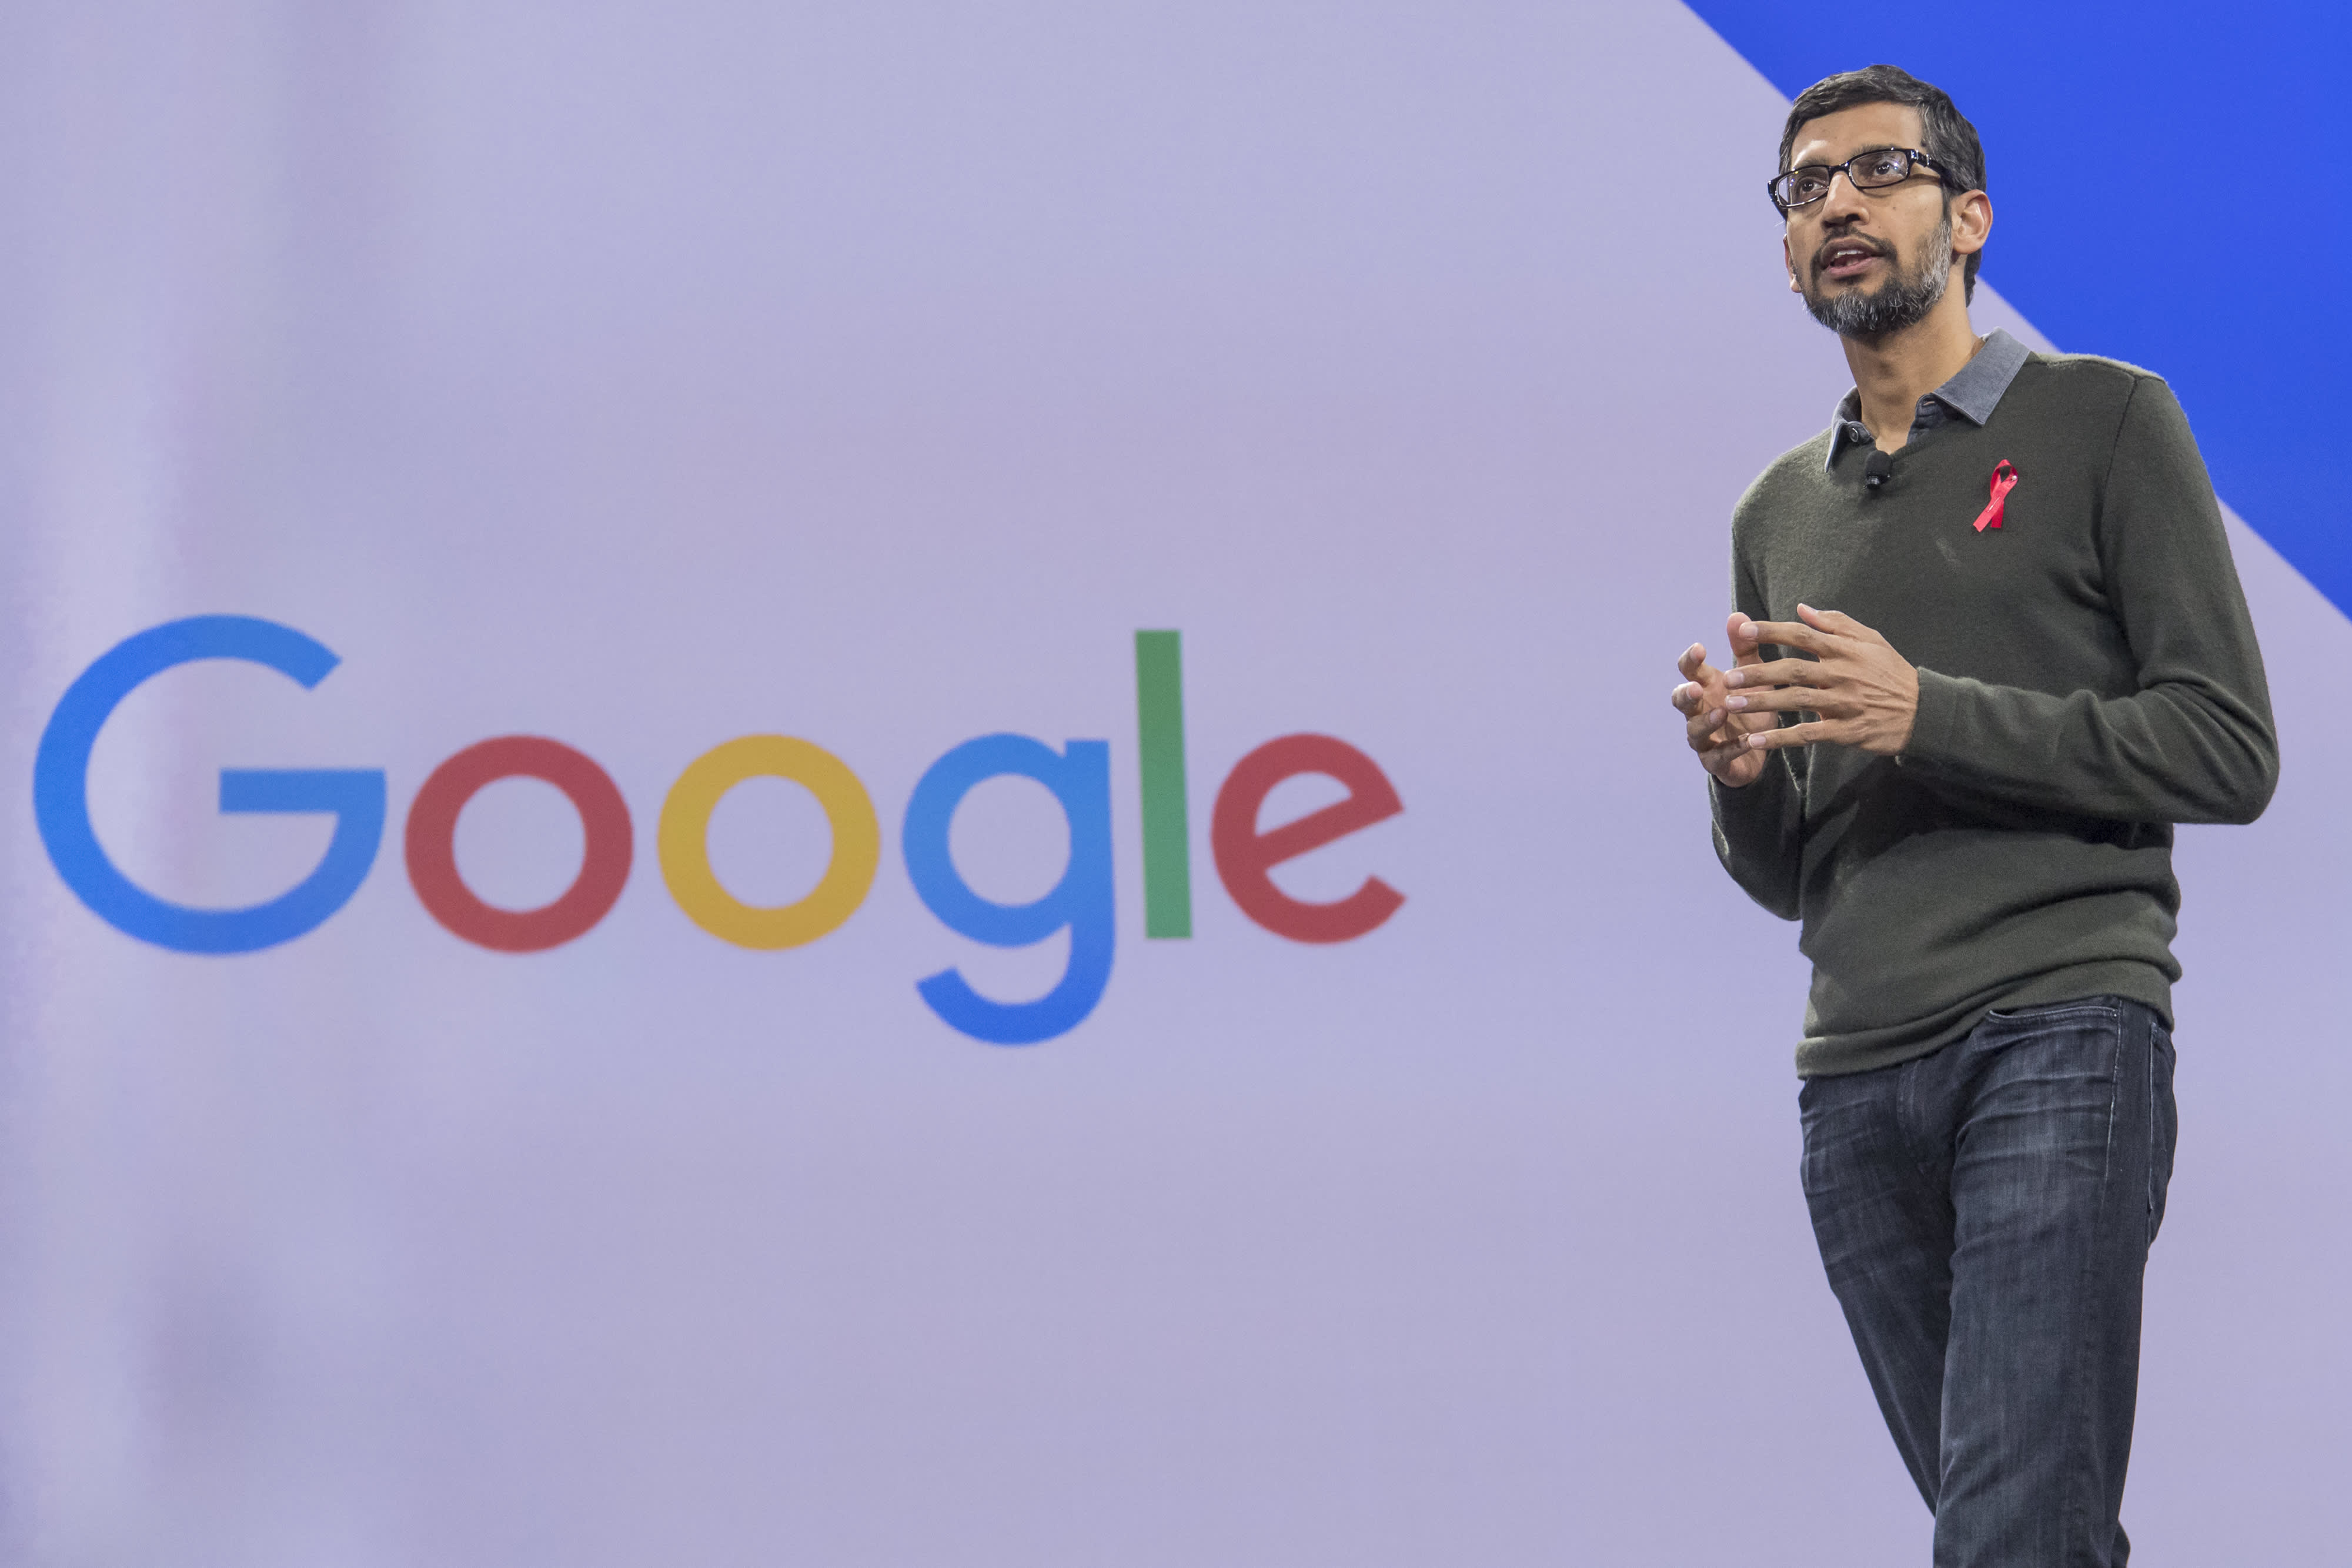 Google changed its targeting policies to shine a light on political ads, but campaigns are now eyeing more opaque platforms